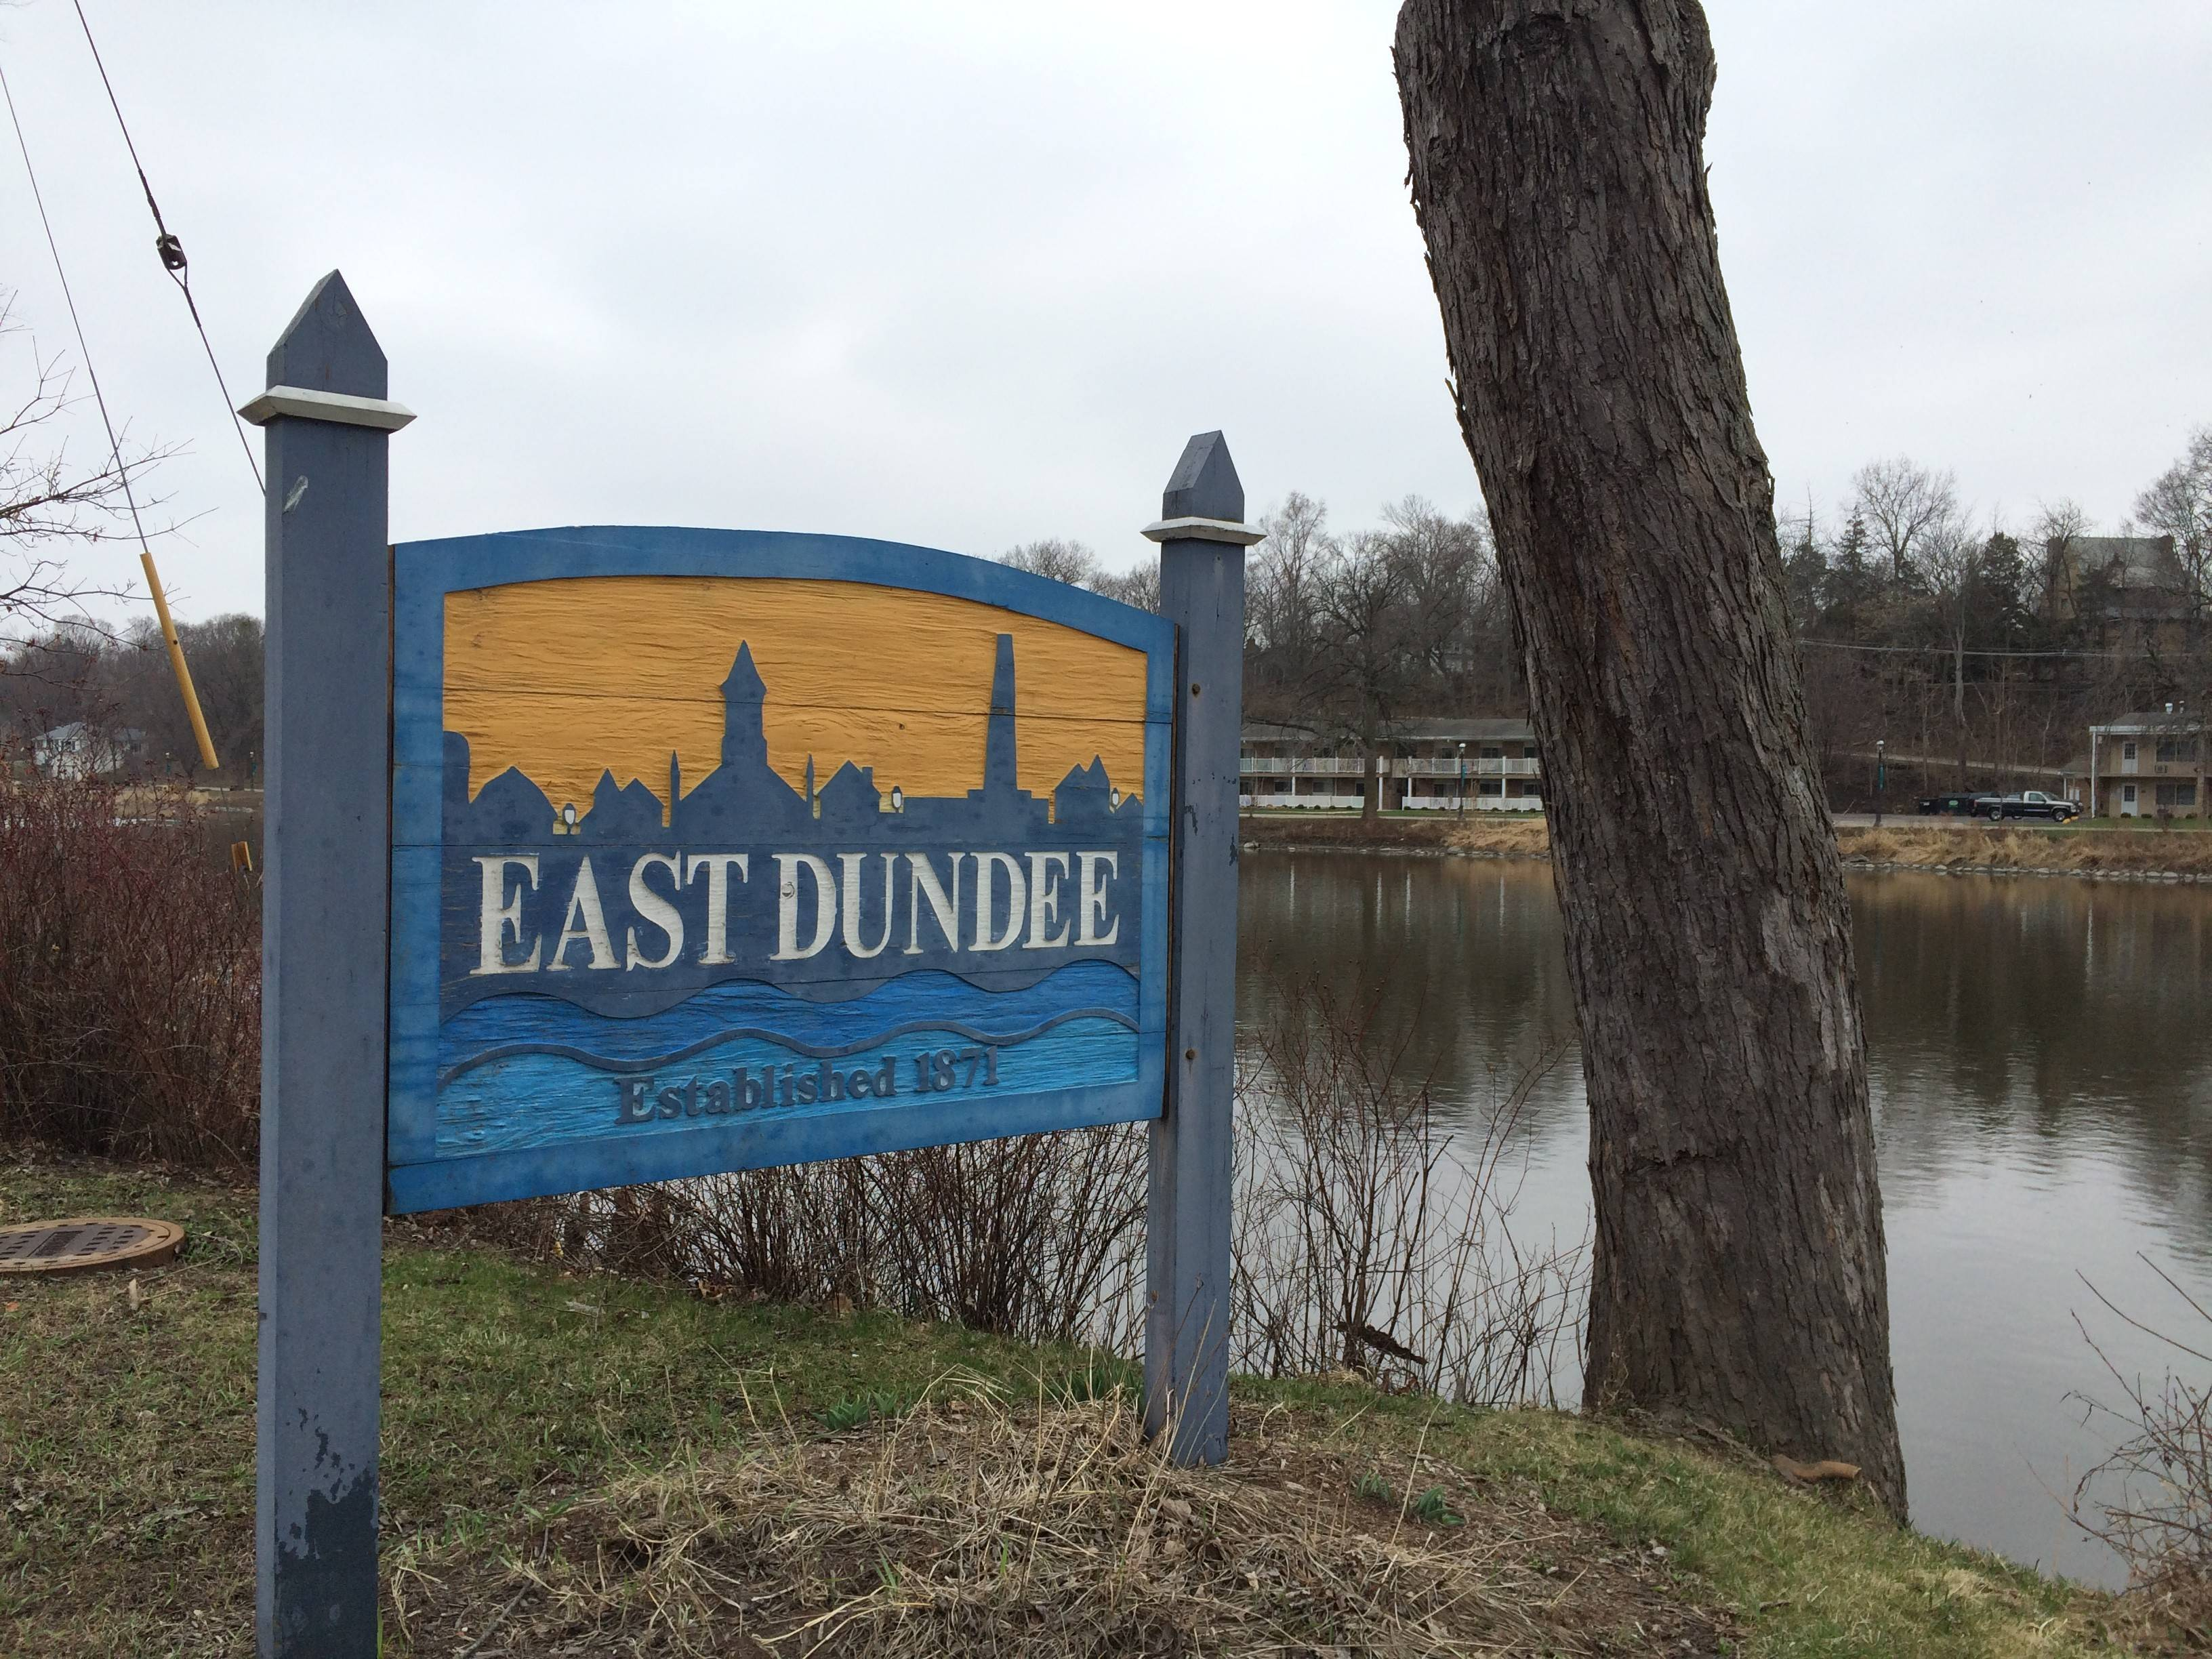 East Dundee is a village of 3,200 people along the Fox River in Kane County.